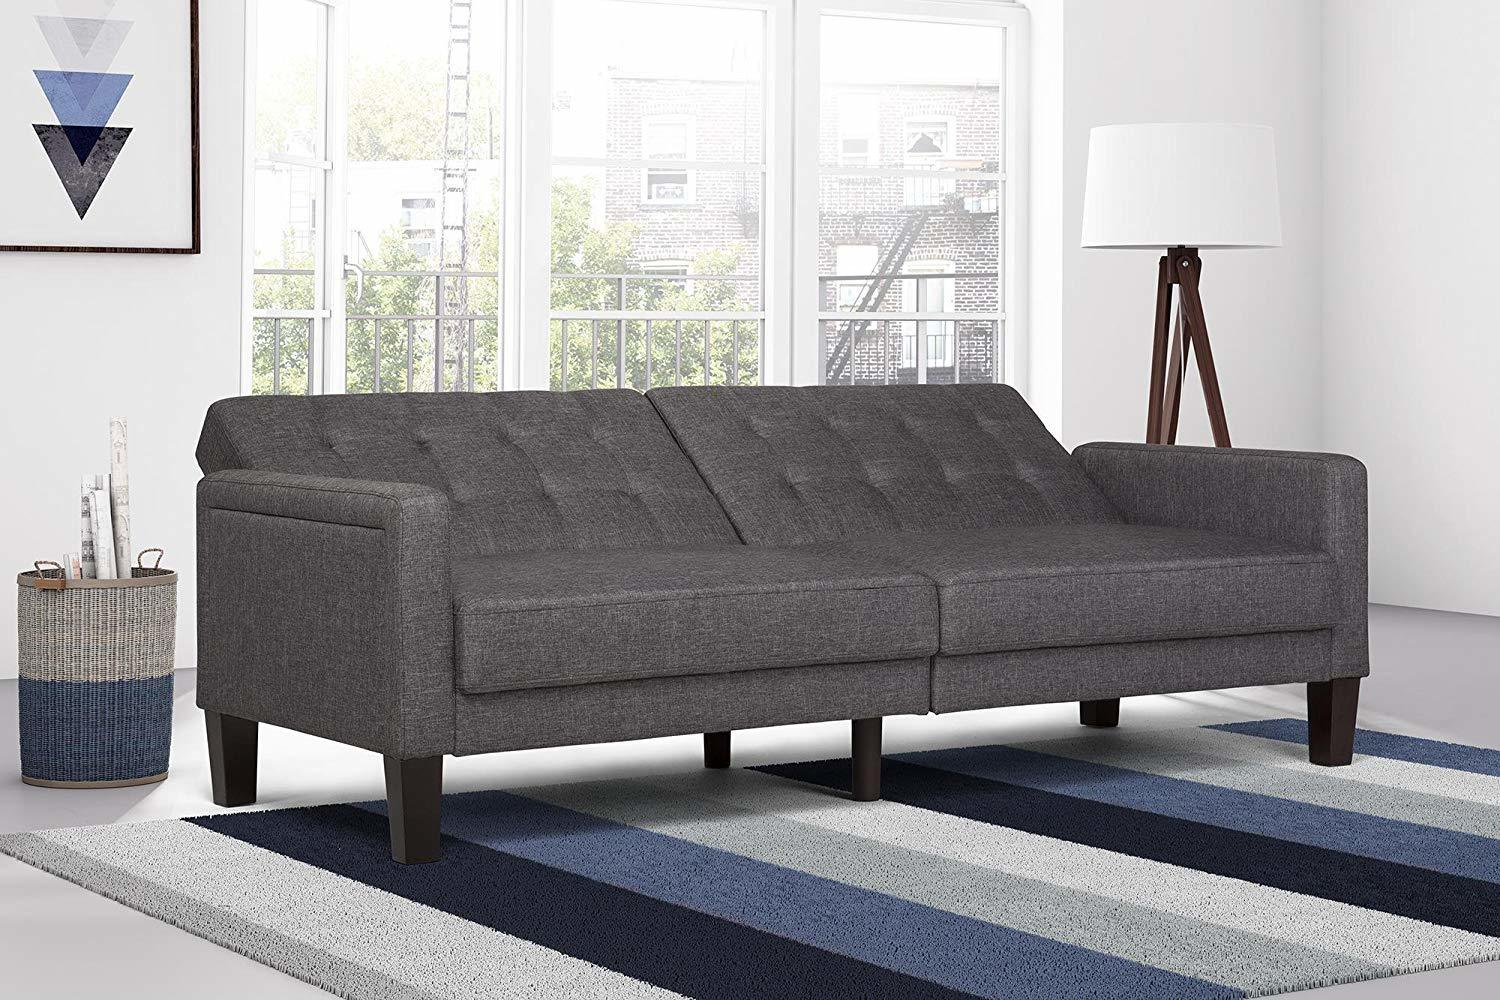 Top 10 Best Sleeper Sofas Best Sofa Beds  2017 Reviews of The Most Comfortable Sleeper Sofas